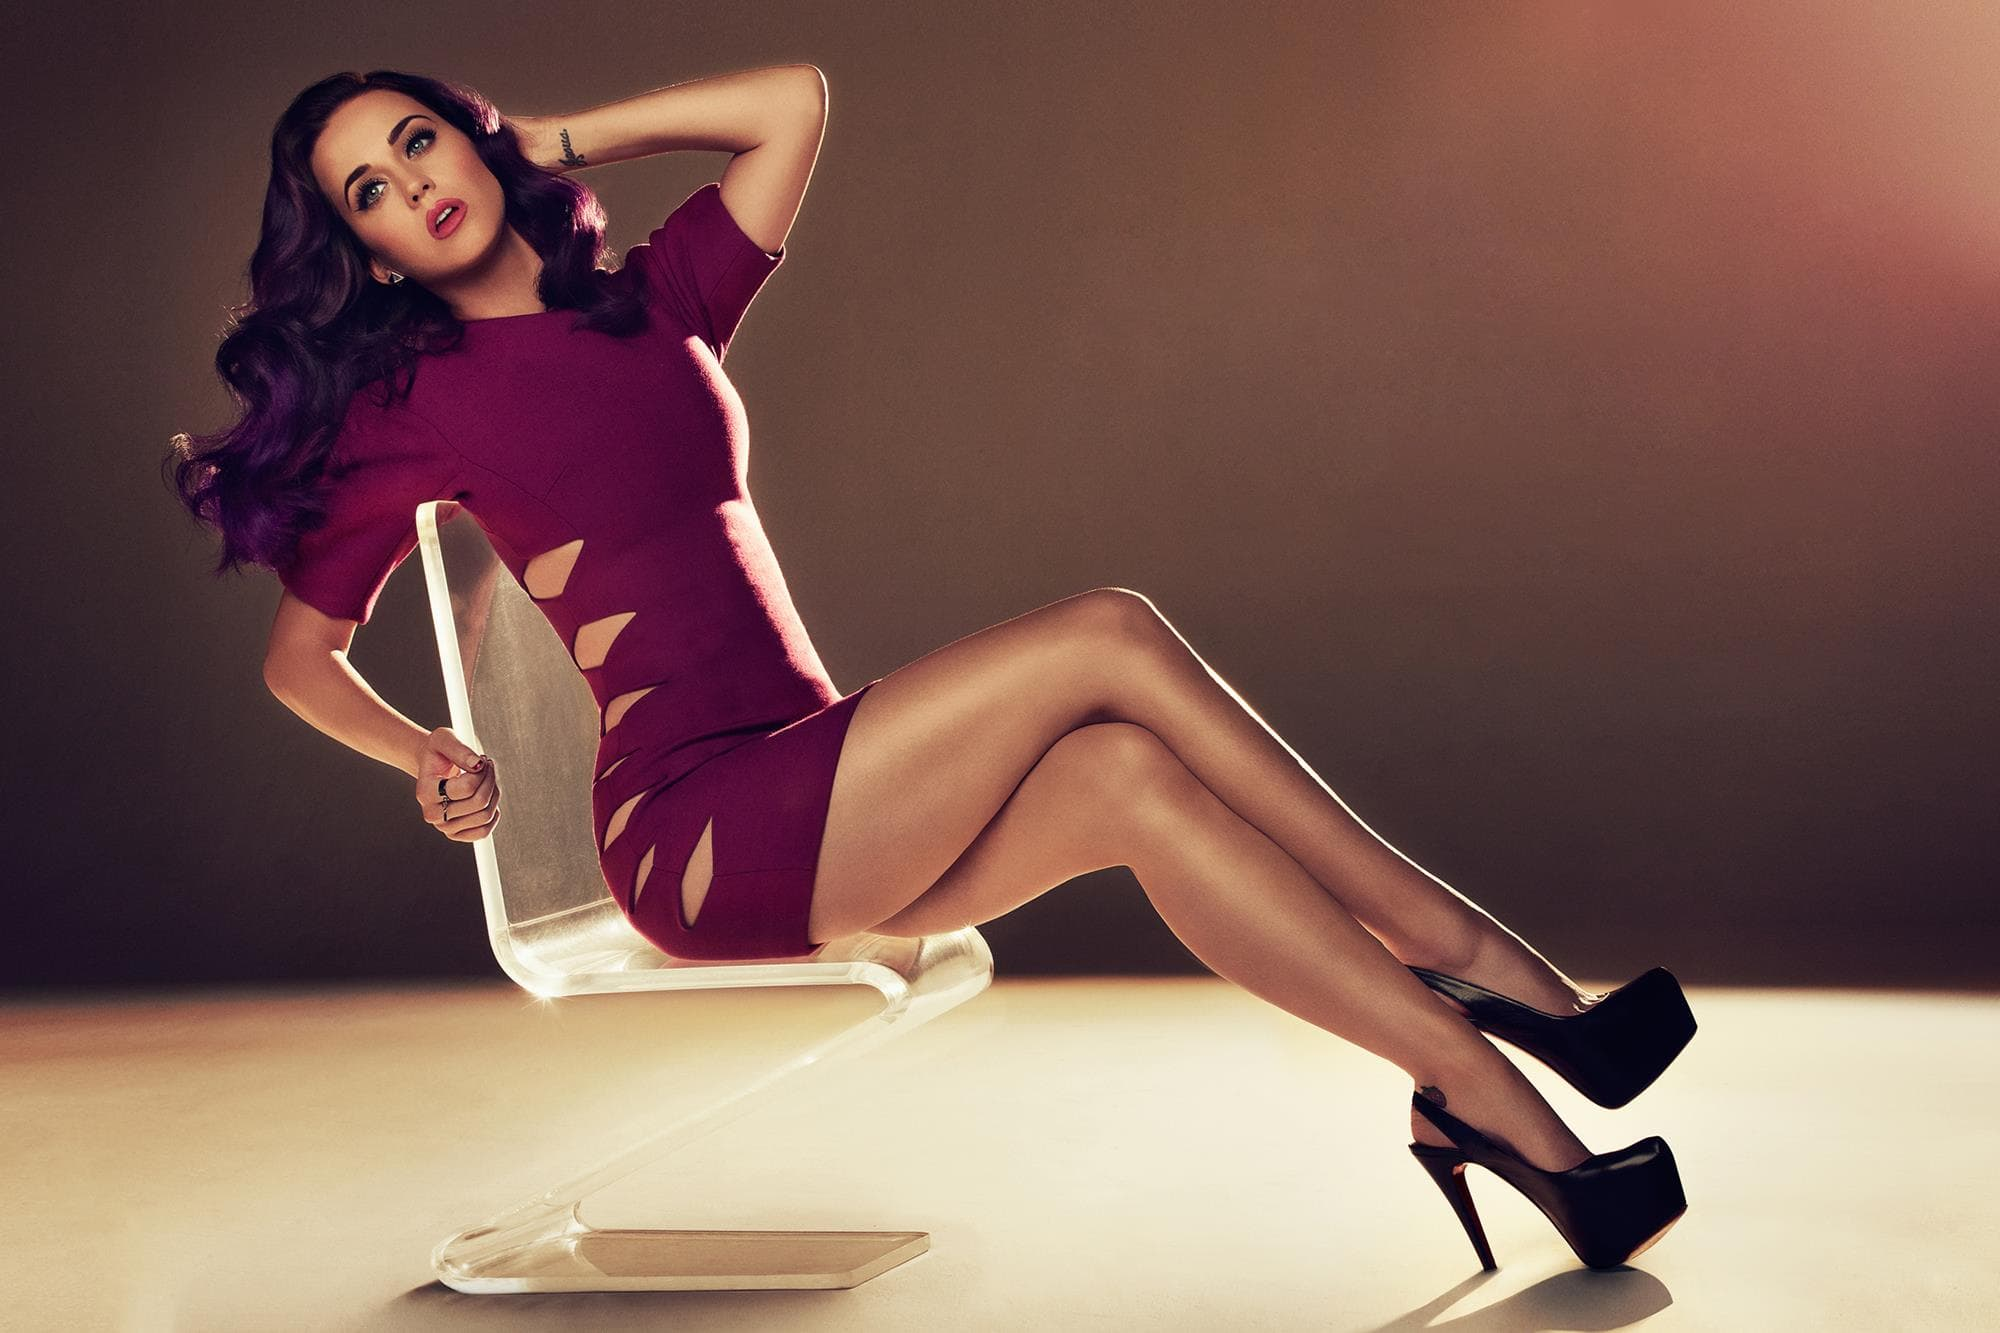 Katy Perry legs beautiful